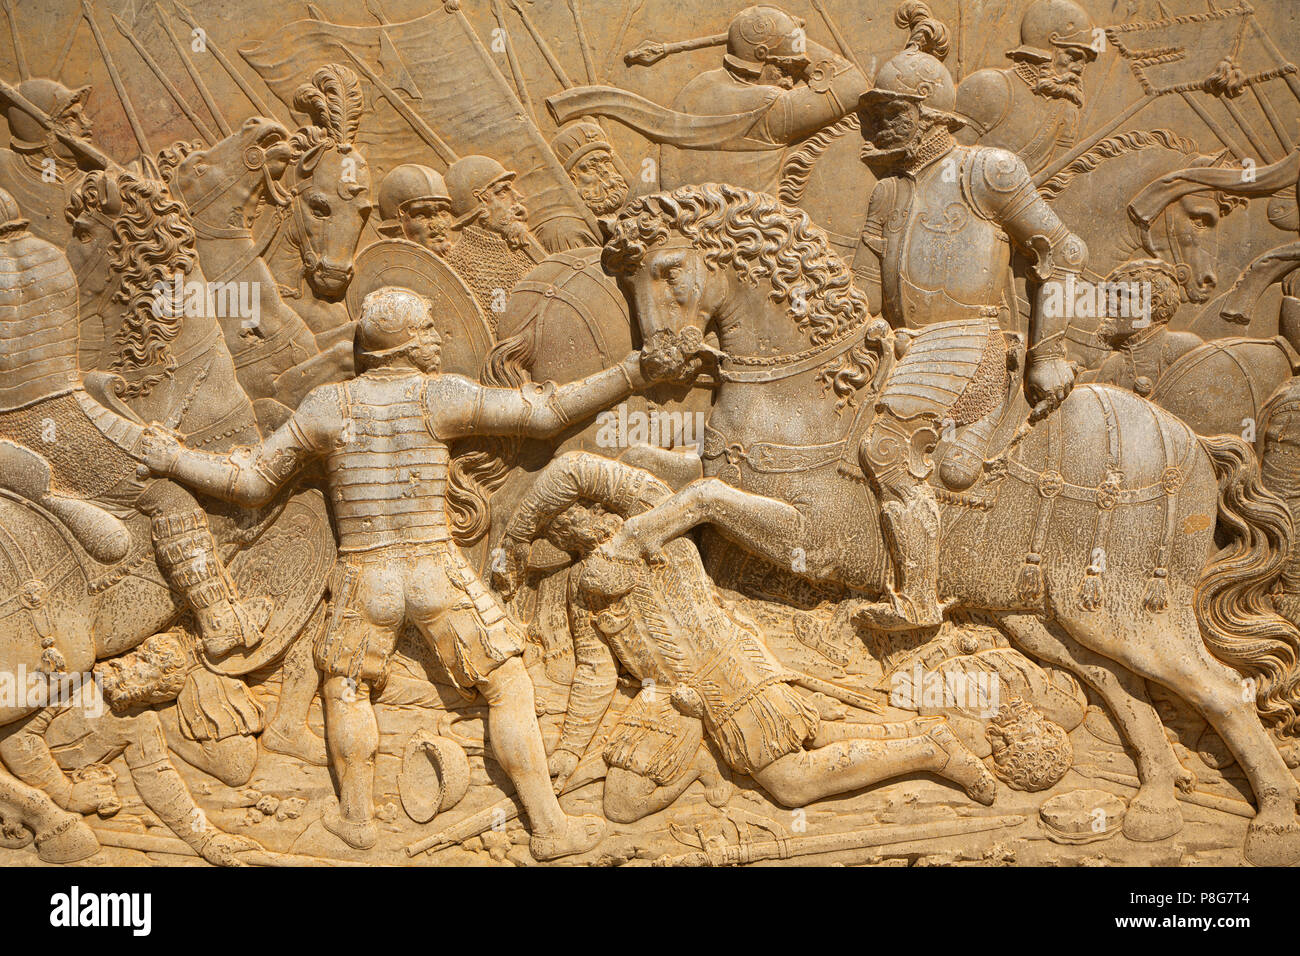 Relief carving of a battle scene. Palacio de Carlos V. Palace of Charles V. Alhambra, UNESCO World Heritage Site. Granada City. Andalusia, Southern Sp Stock Photo